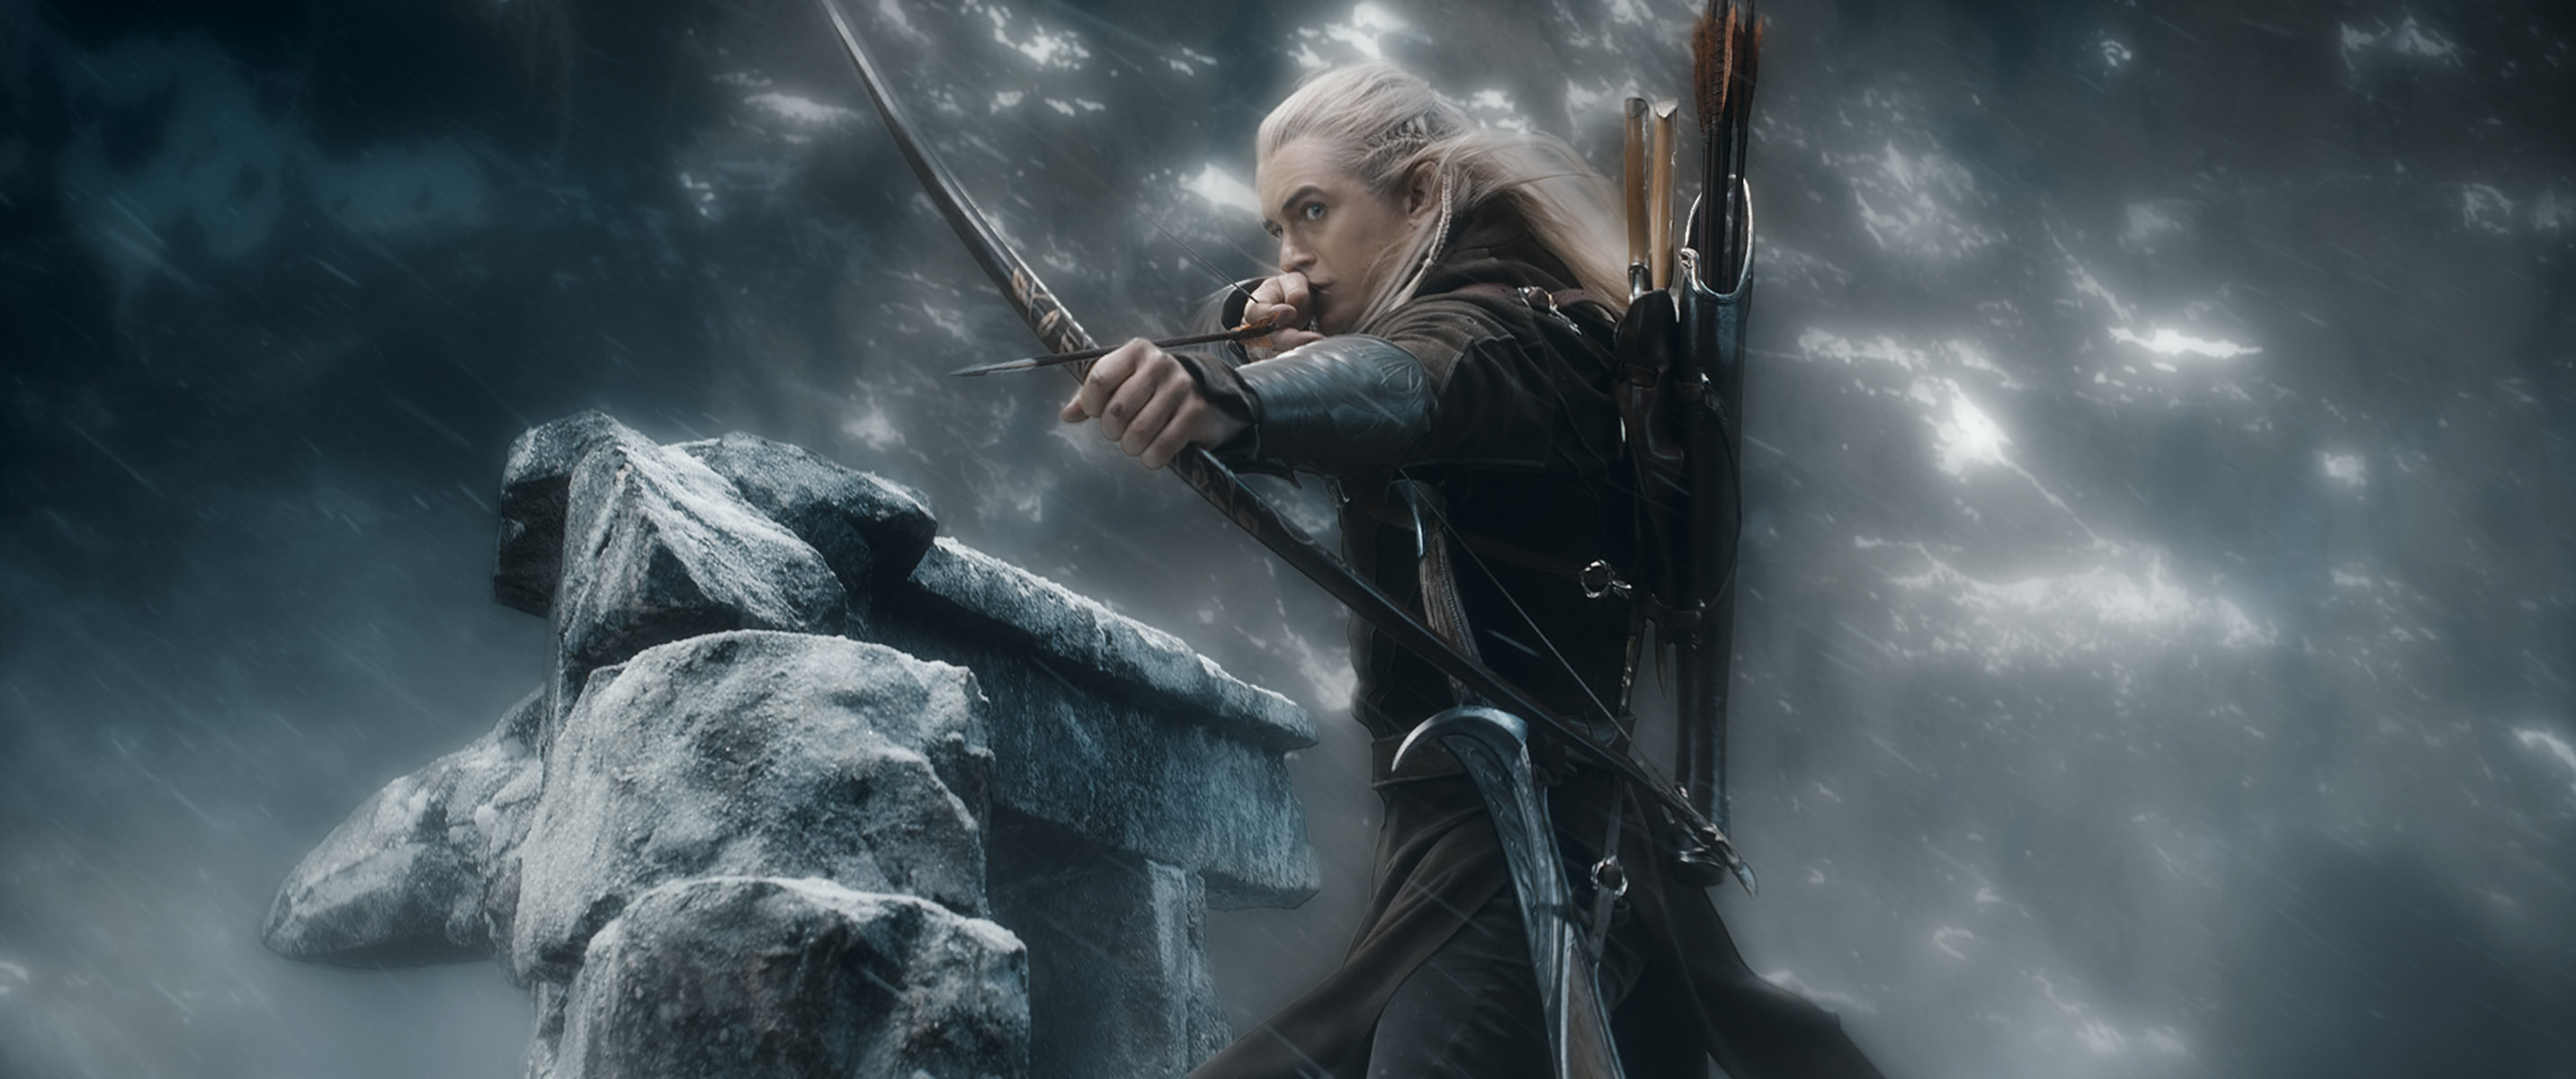 'The Hobbit: The Battle of the Five Armies' receives Costume Guild nomination